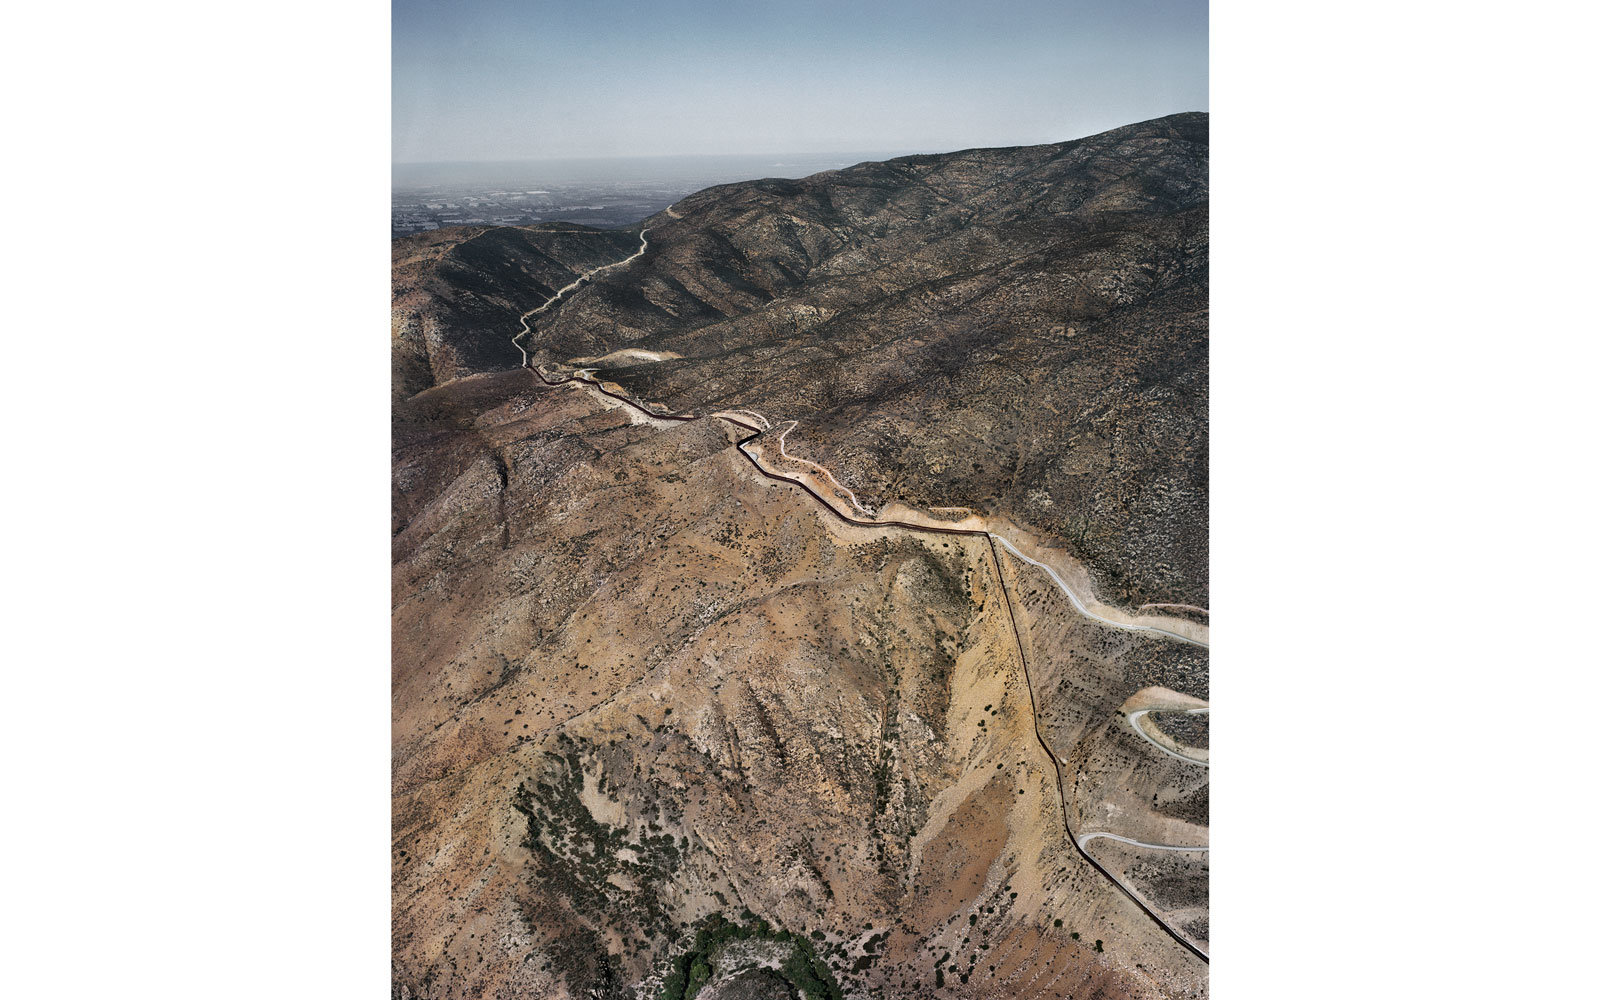 In Photographs: Mexico/U.S. Border